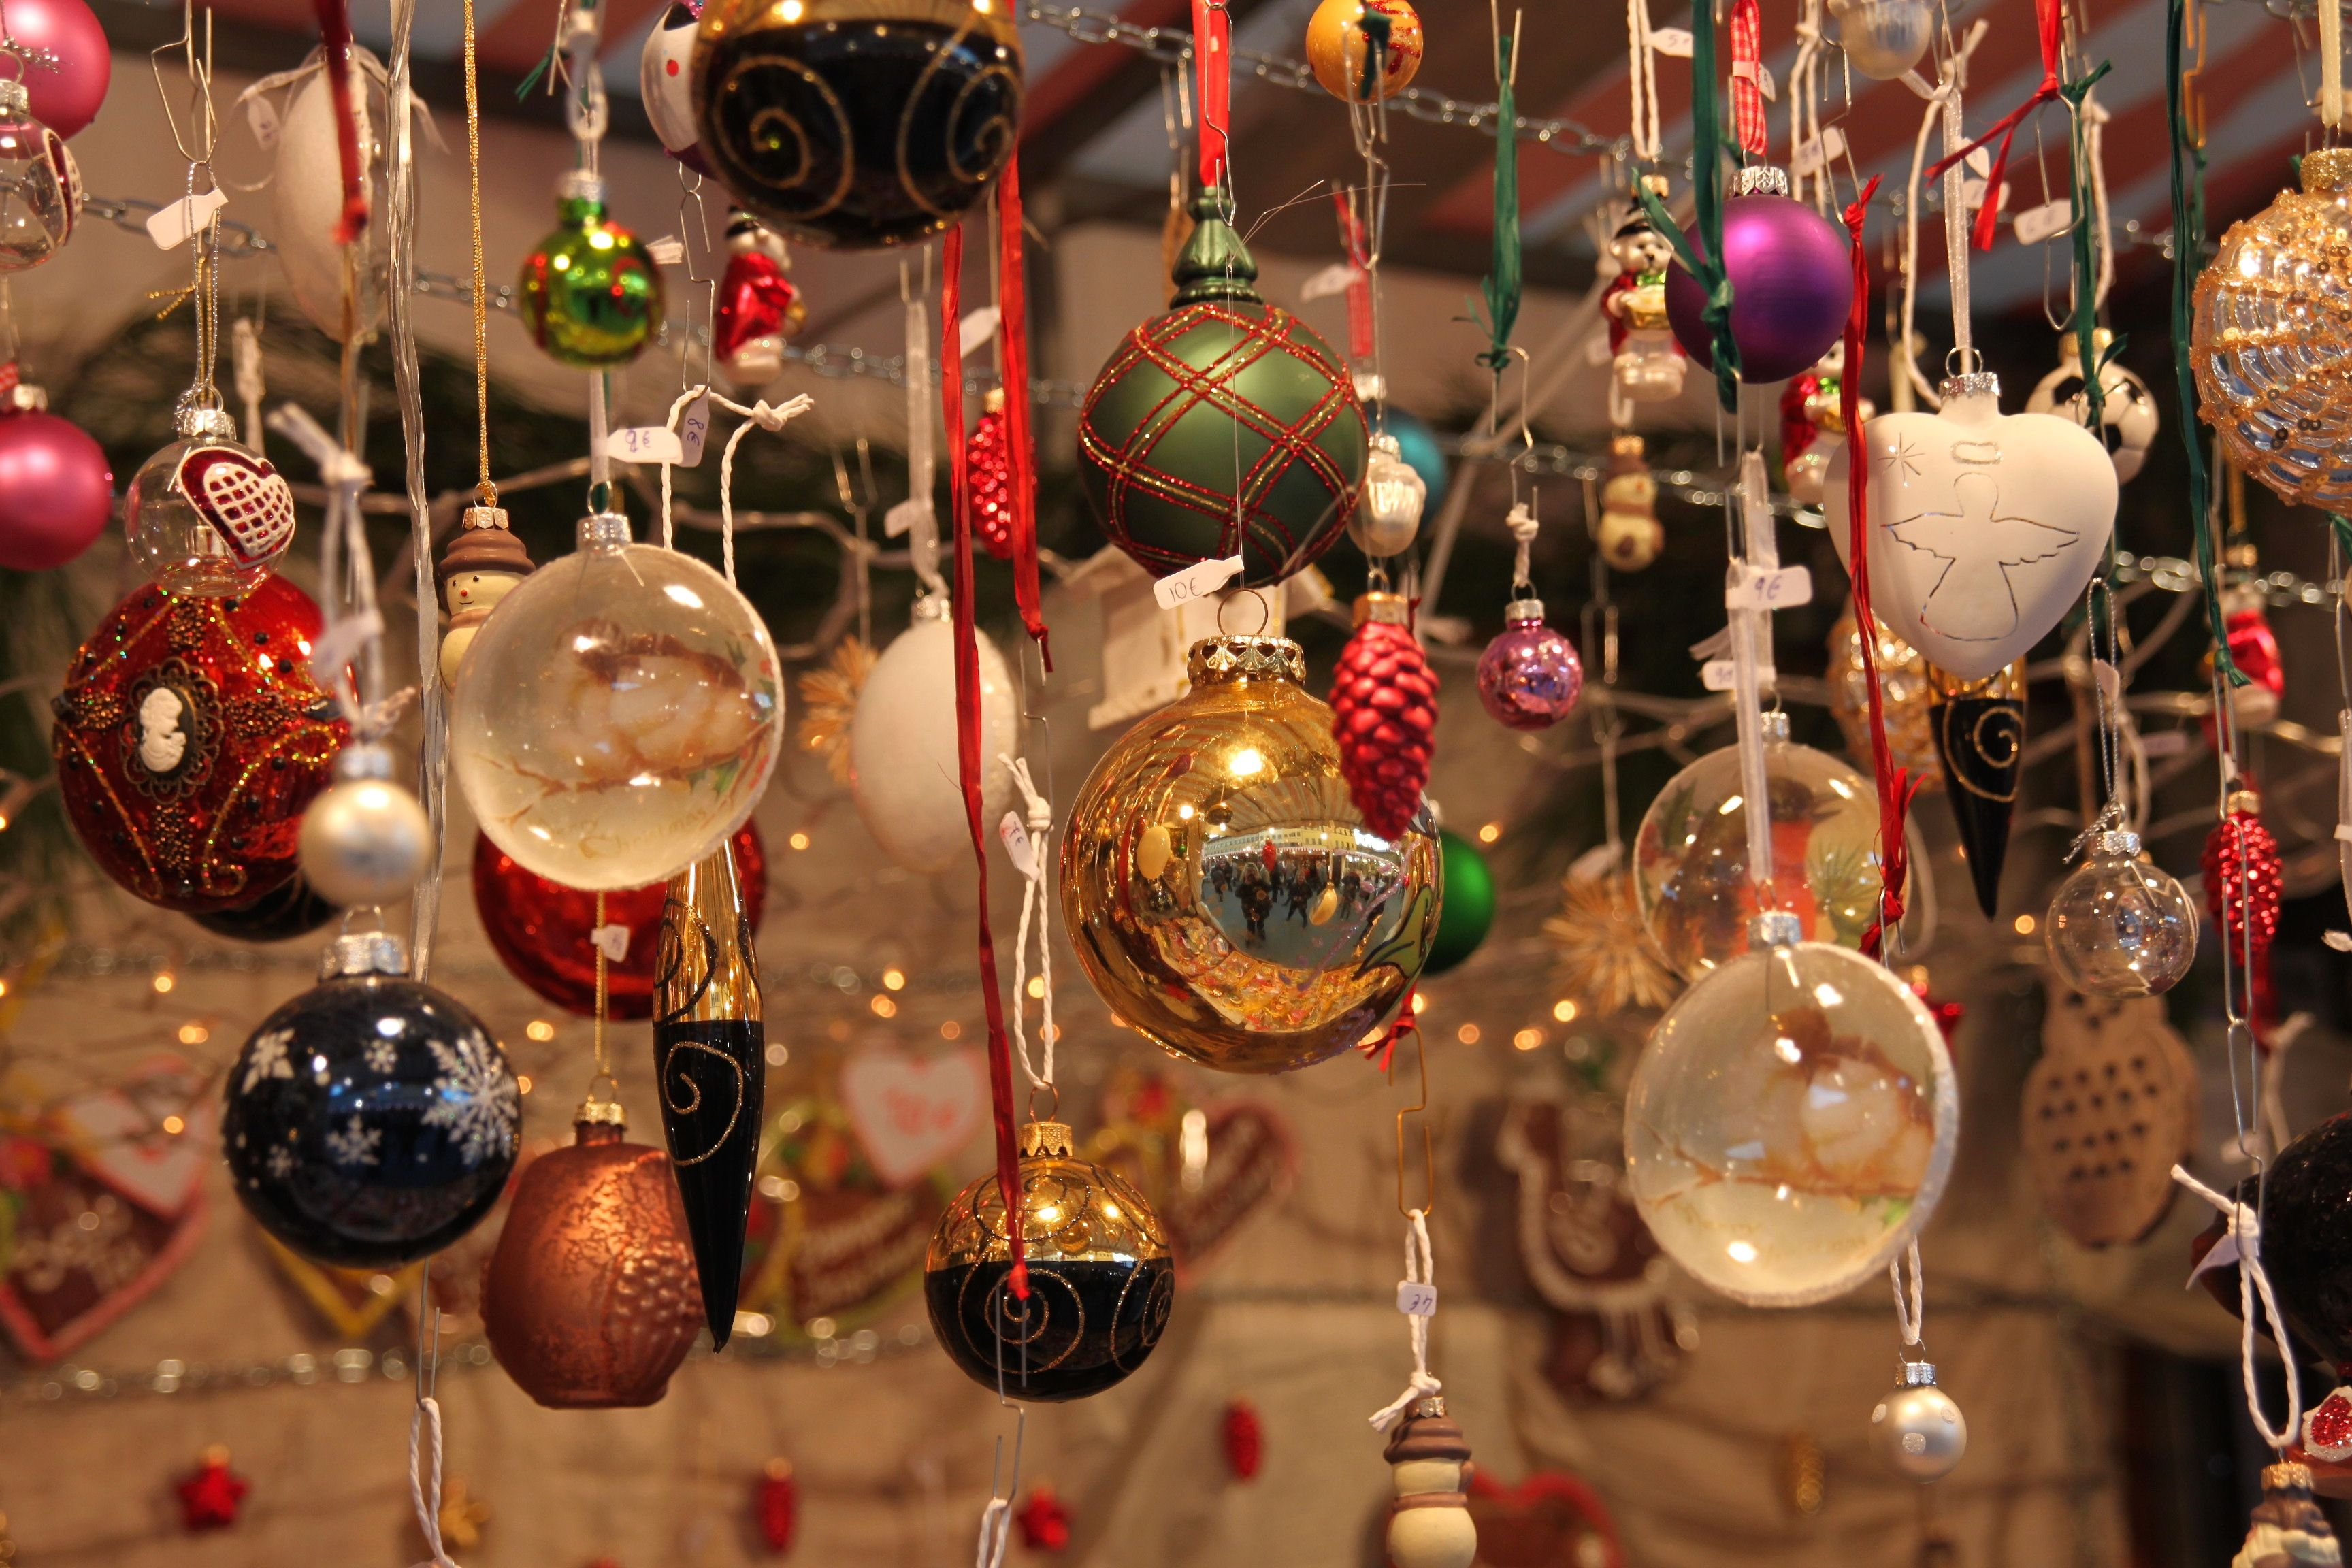 Italian 101 – How to say Merry Christmas and Happy New Year